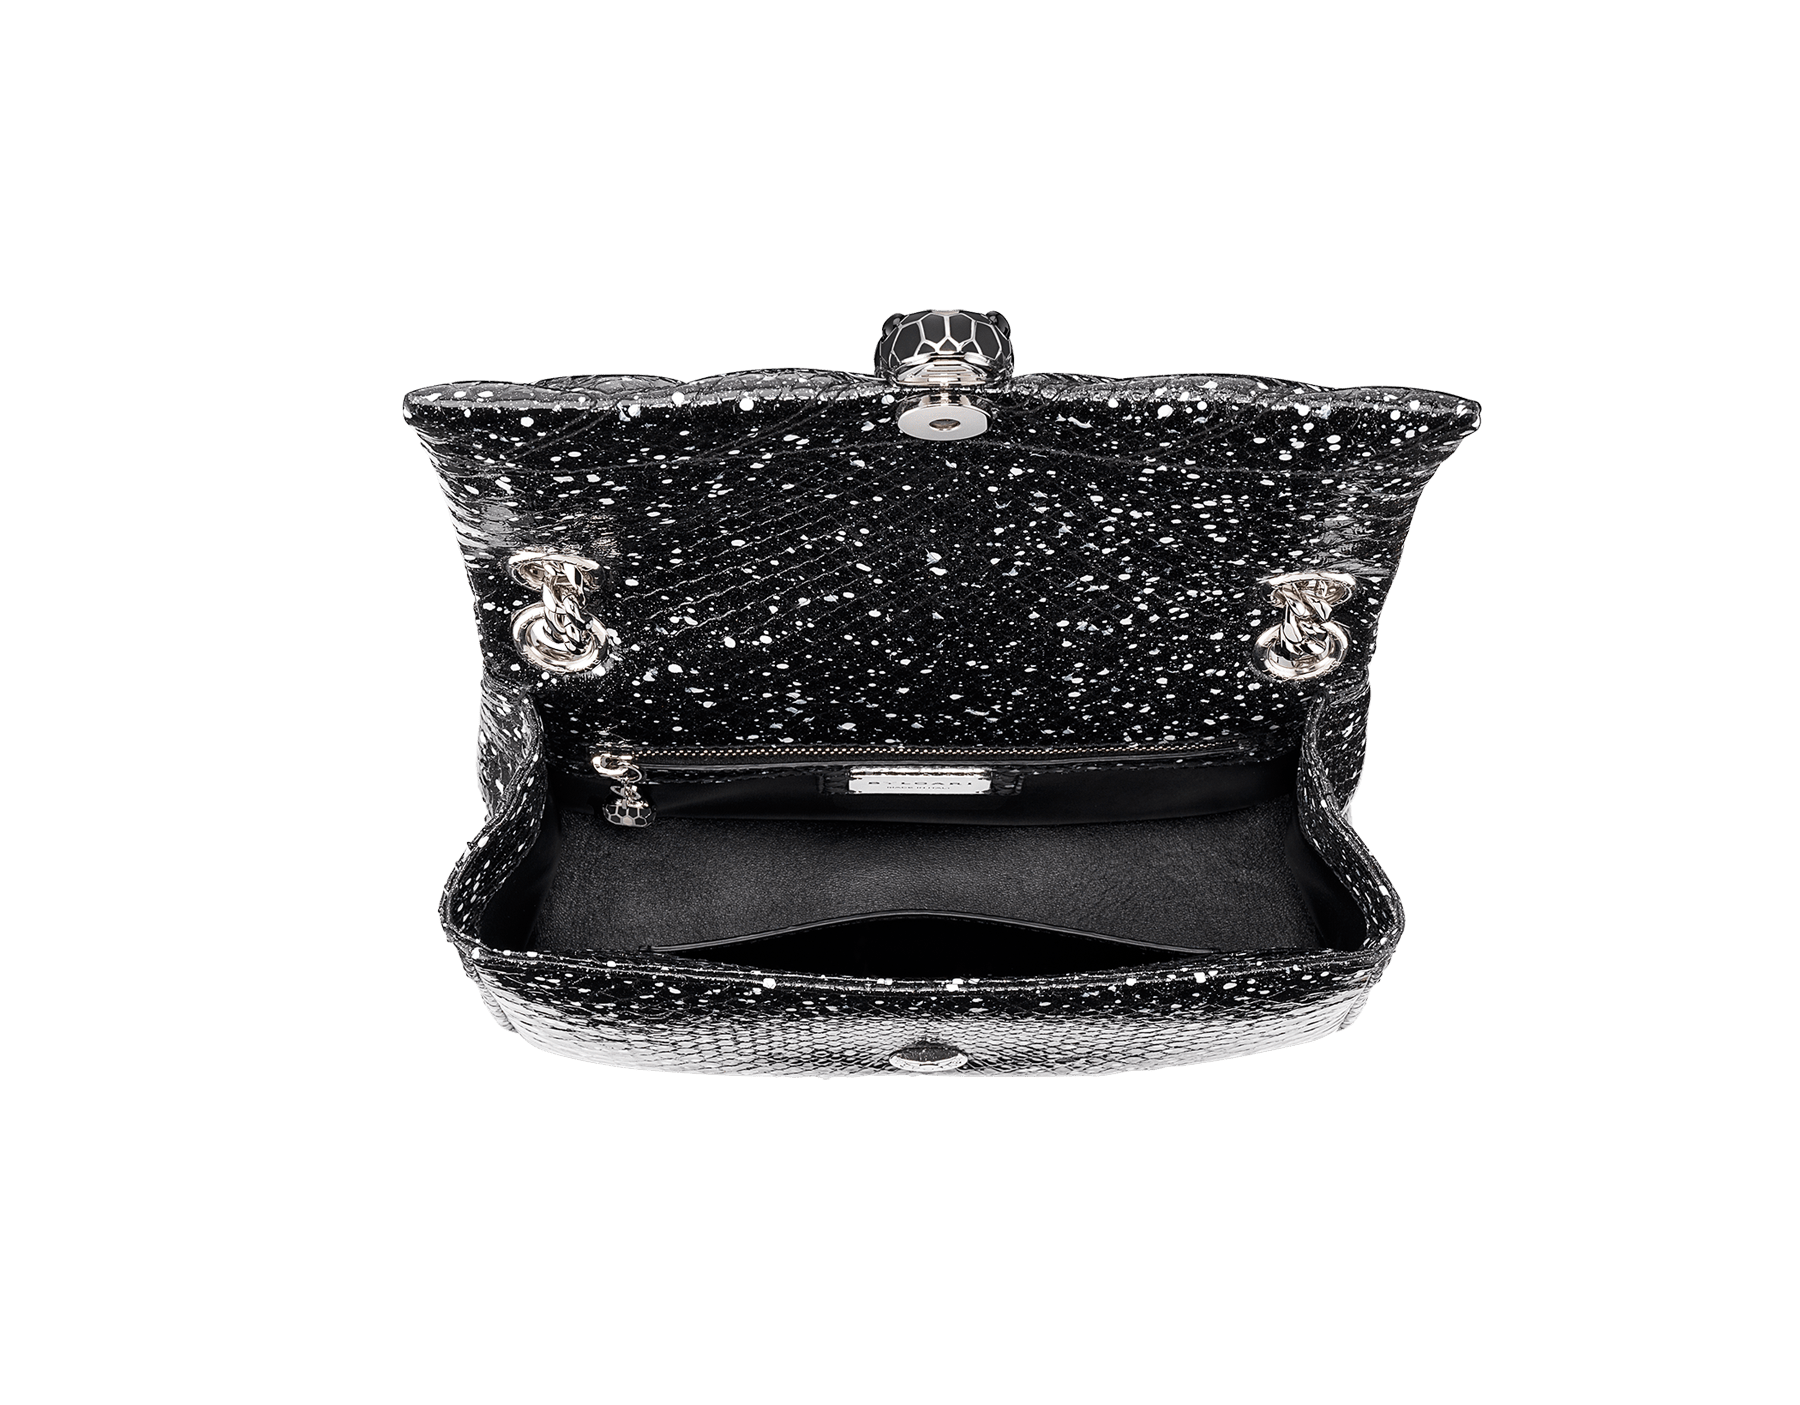 Serpenti Cabochon shoulder bag in soft matelassé black and white cosmic python skin with graphic motif. Snakehead closure in palladium plated brass decorated with matte black and white enamel, and black onyx eyes. 288621 image 4